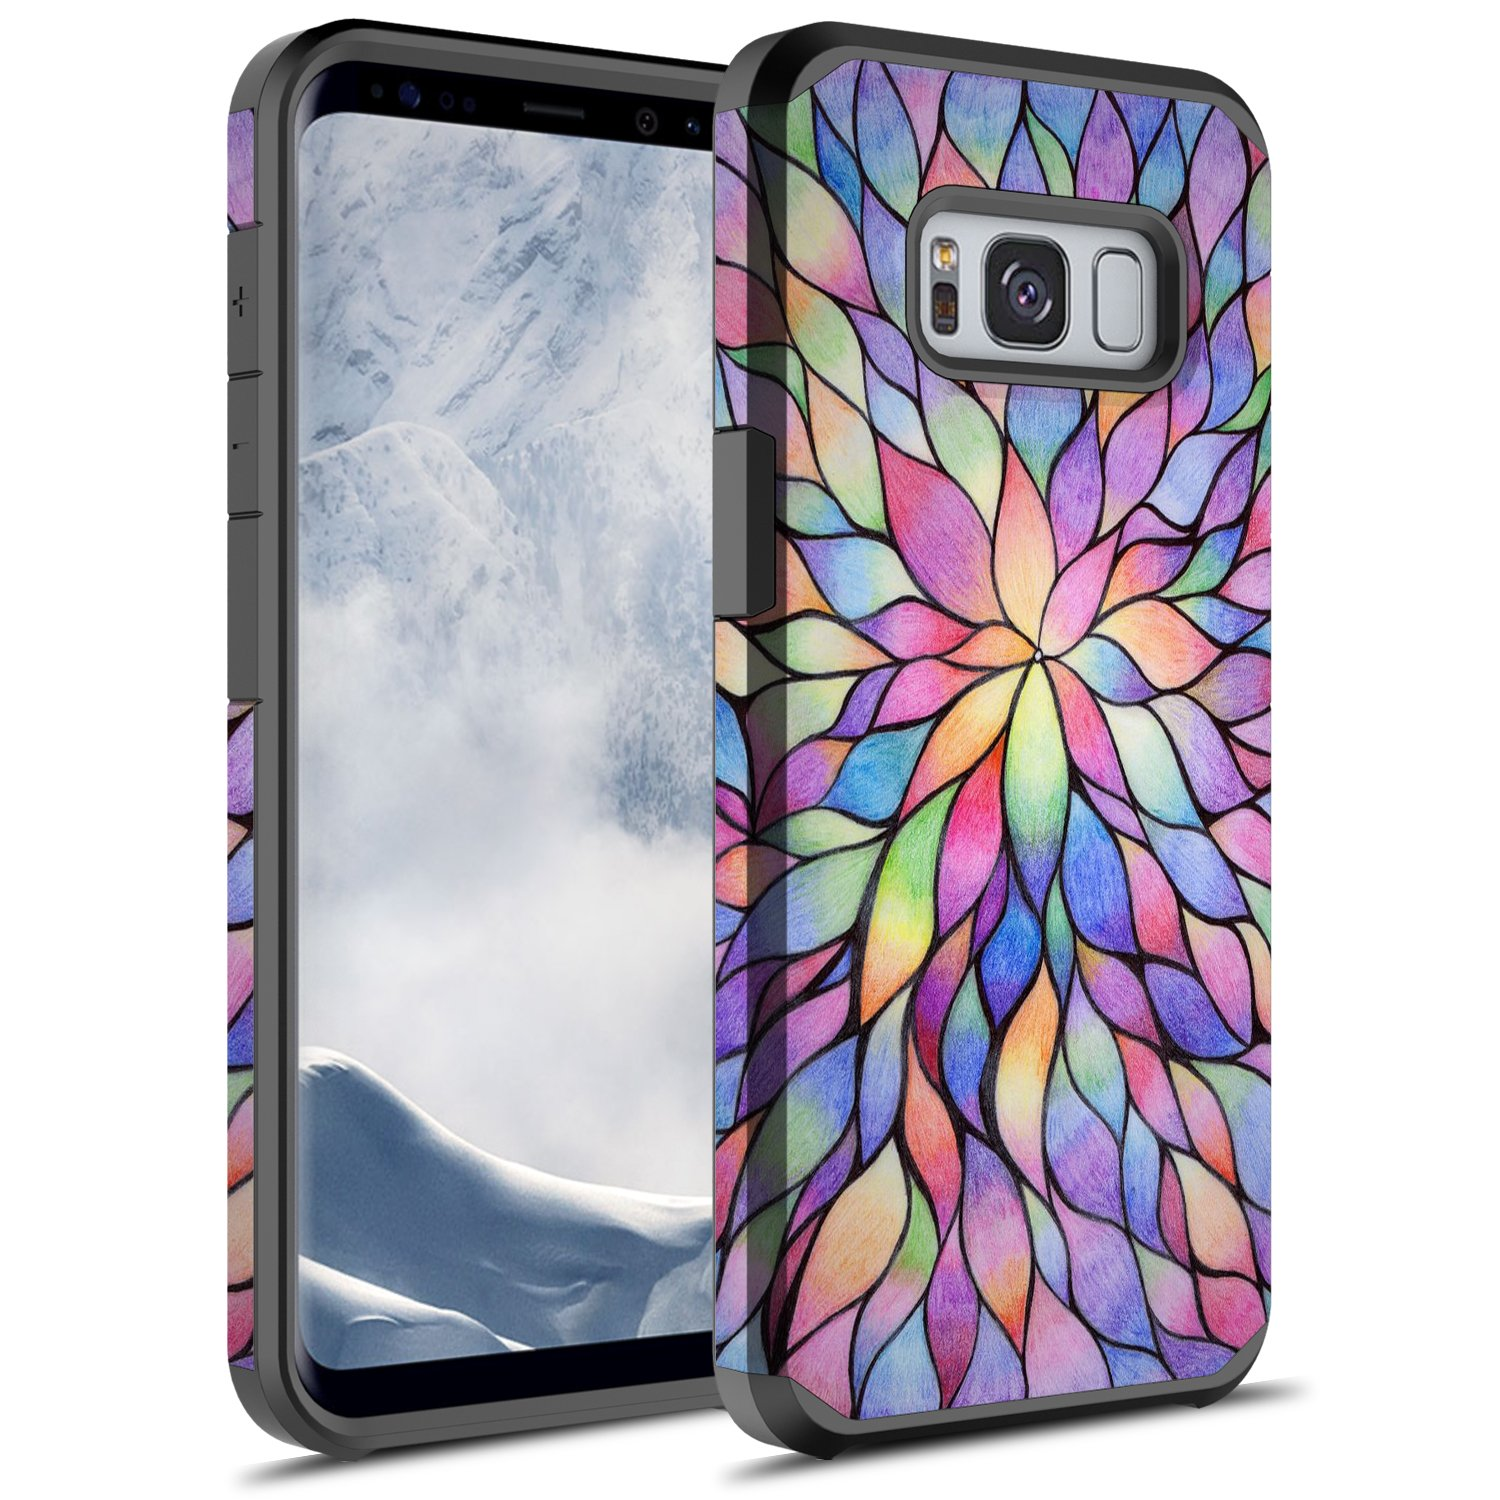 Galaxy S8 Case, GORGCASE [Drop Protection] Dual Layer Graphic Designed Shockproof Hard Hybird Slim Defender Armor Protector Cover for Samsung Galaxy S8 (COLORFUL PETALS) by GORGCASE (Image #1)